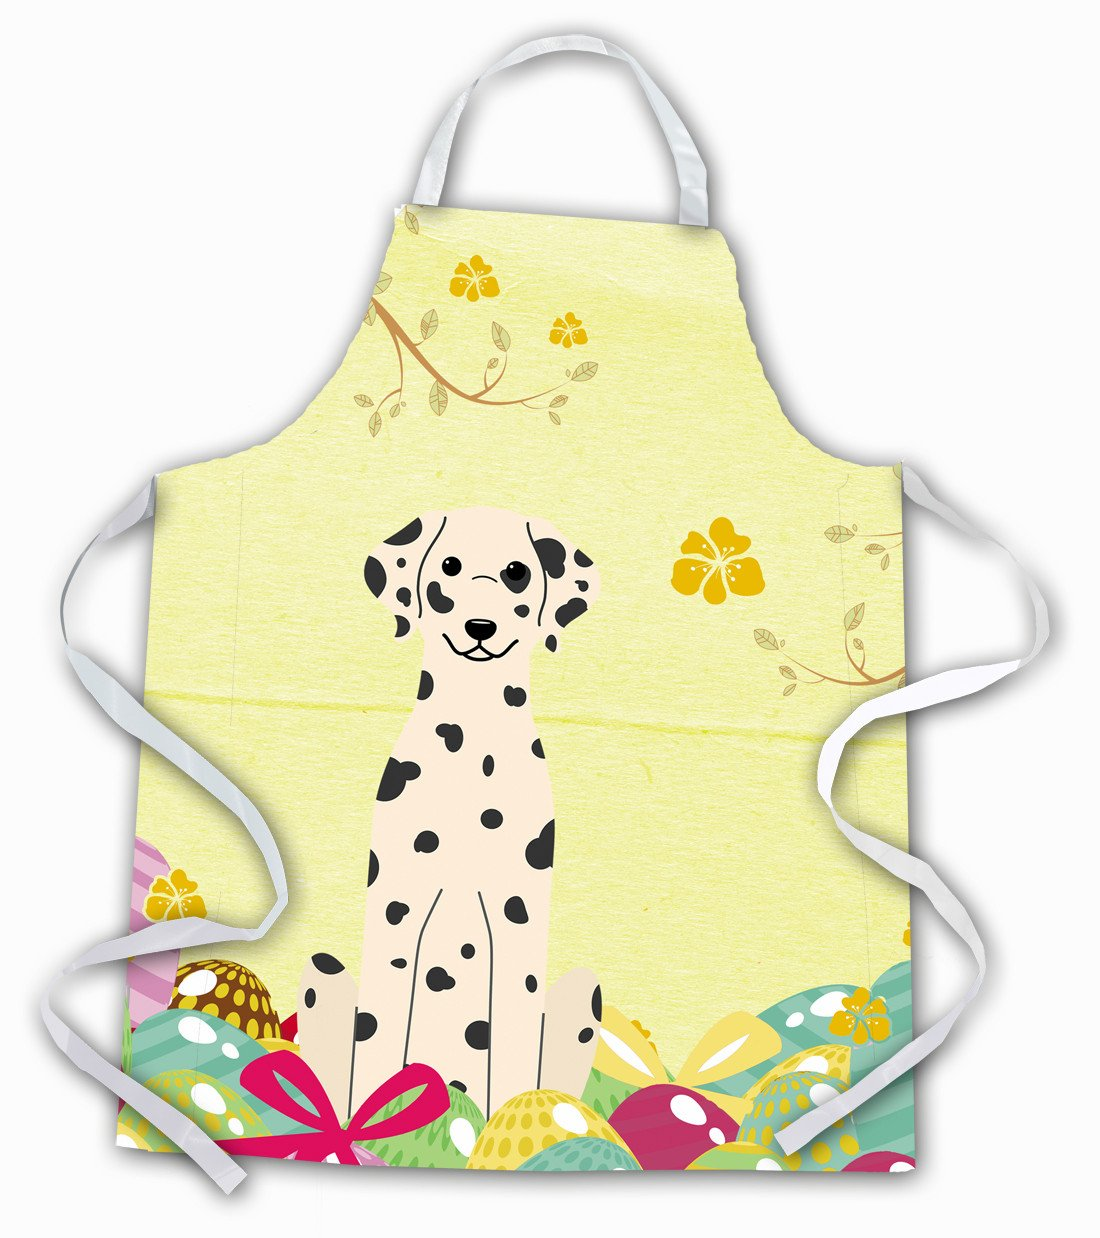 Easter Eggs Dalmatian Apron BB6097APRON by Caroline's Treasures